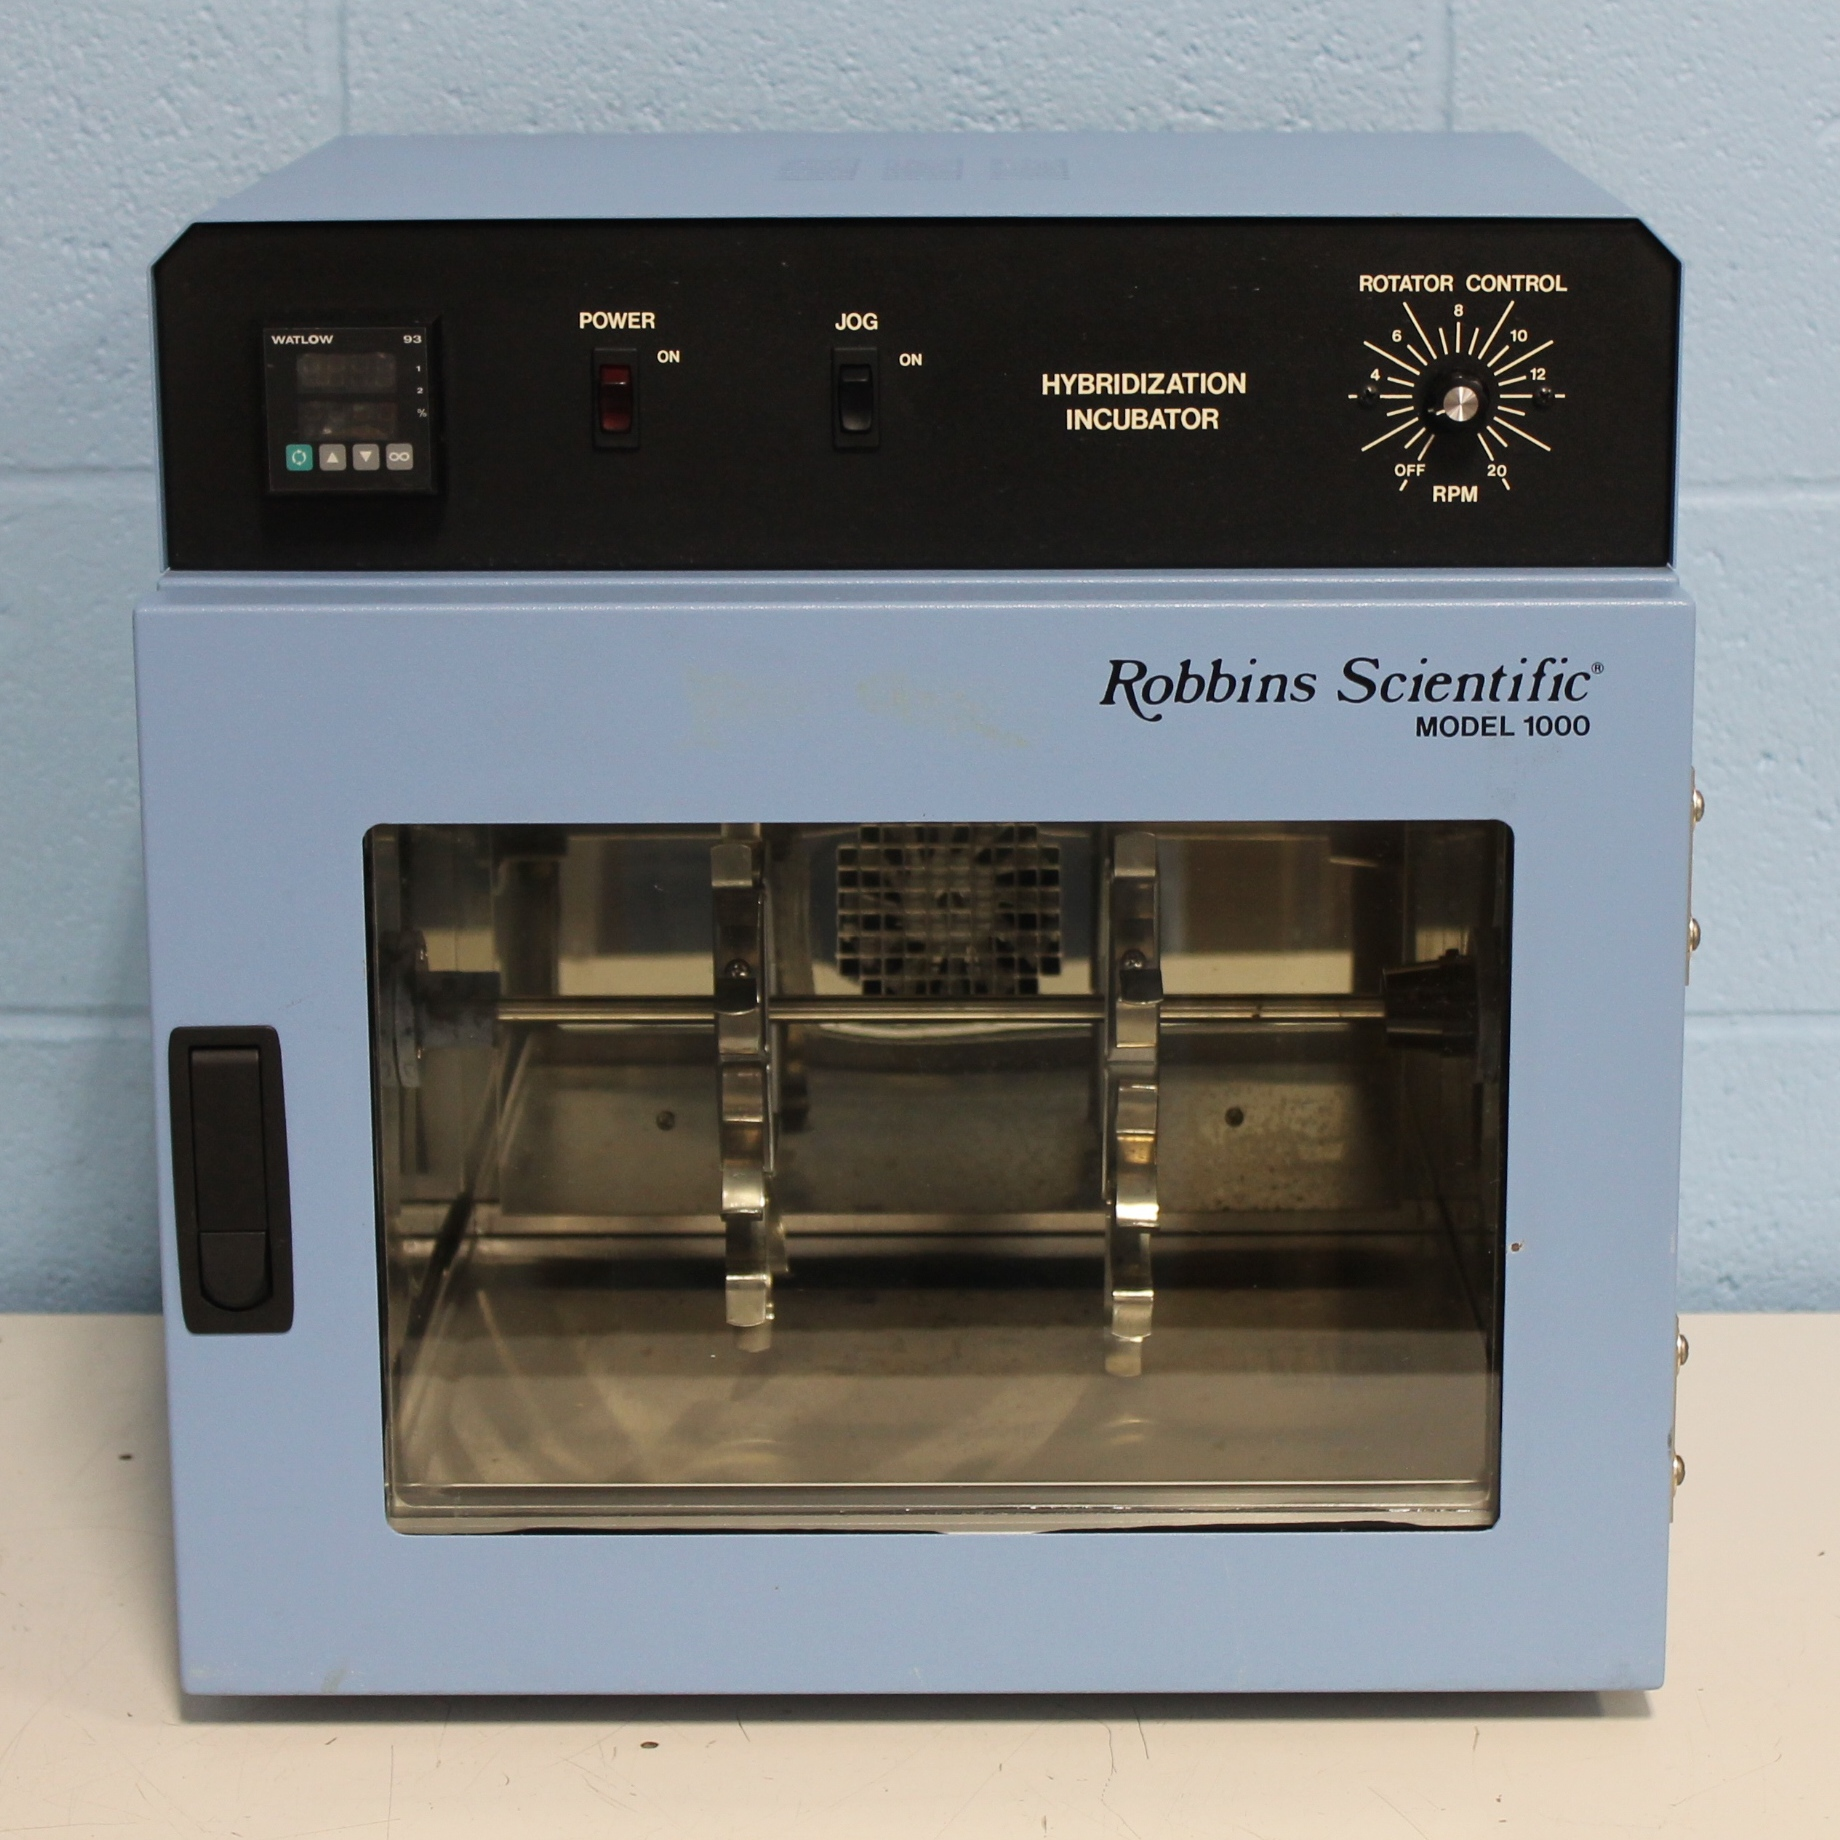 Robbins Scientific 1000 Hybridization Incubator Image